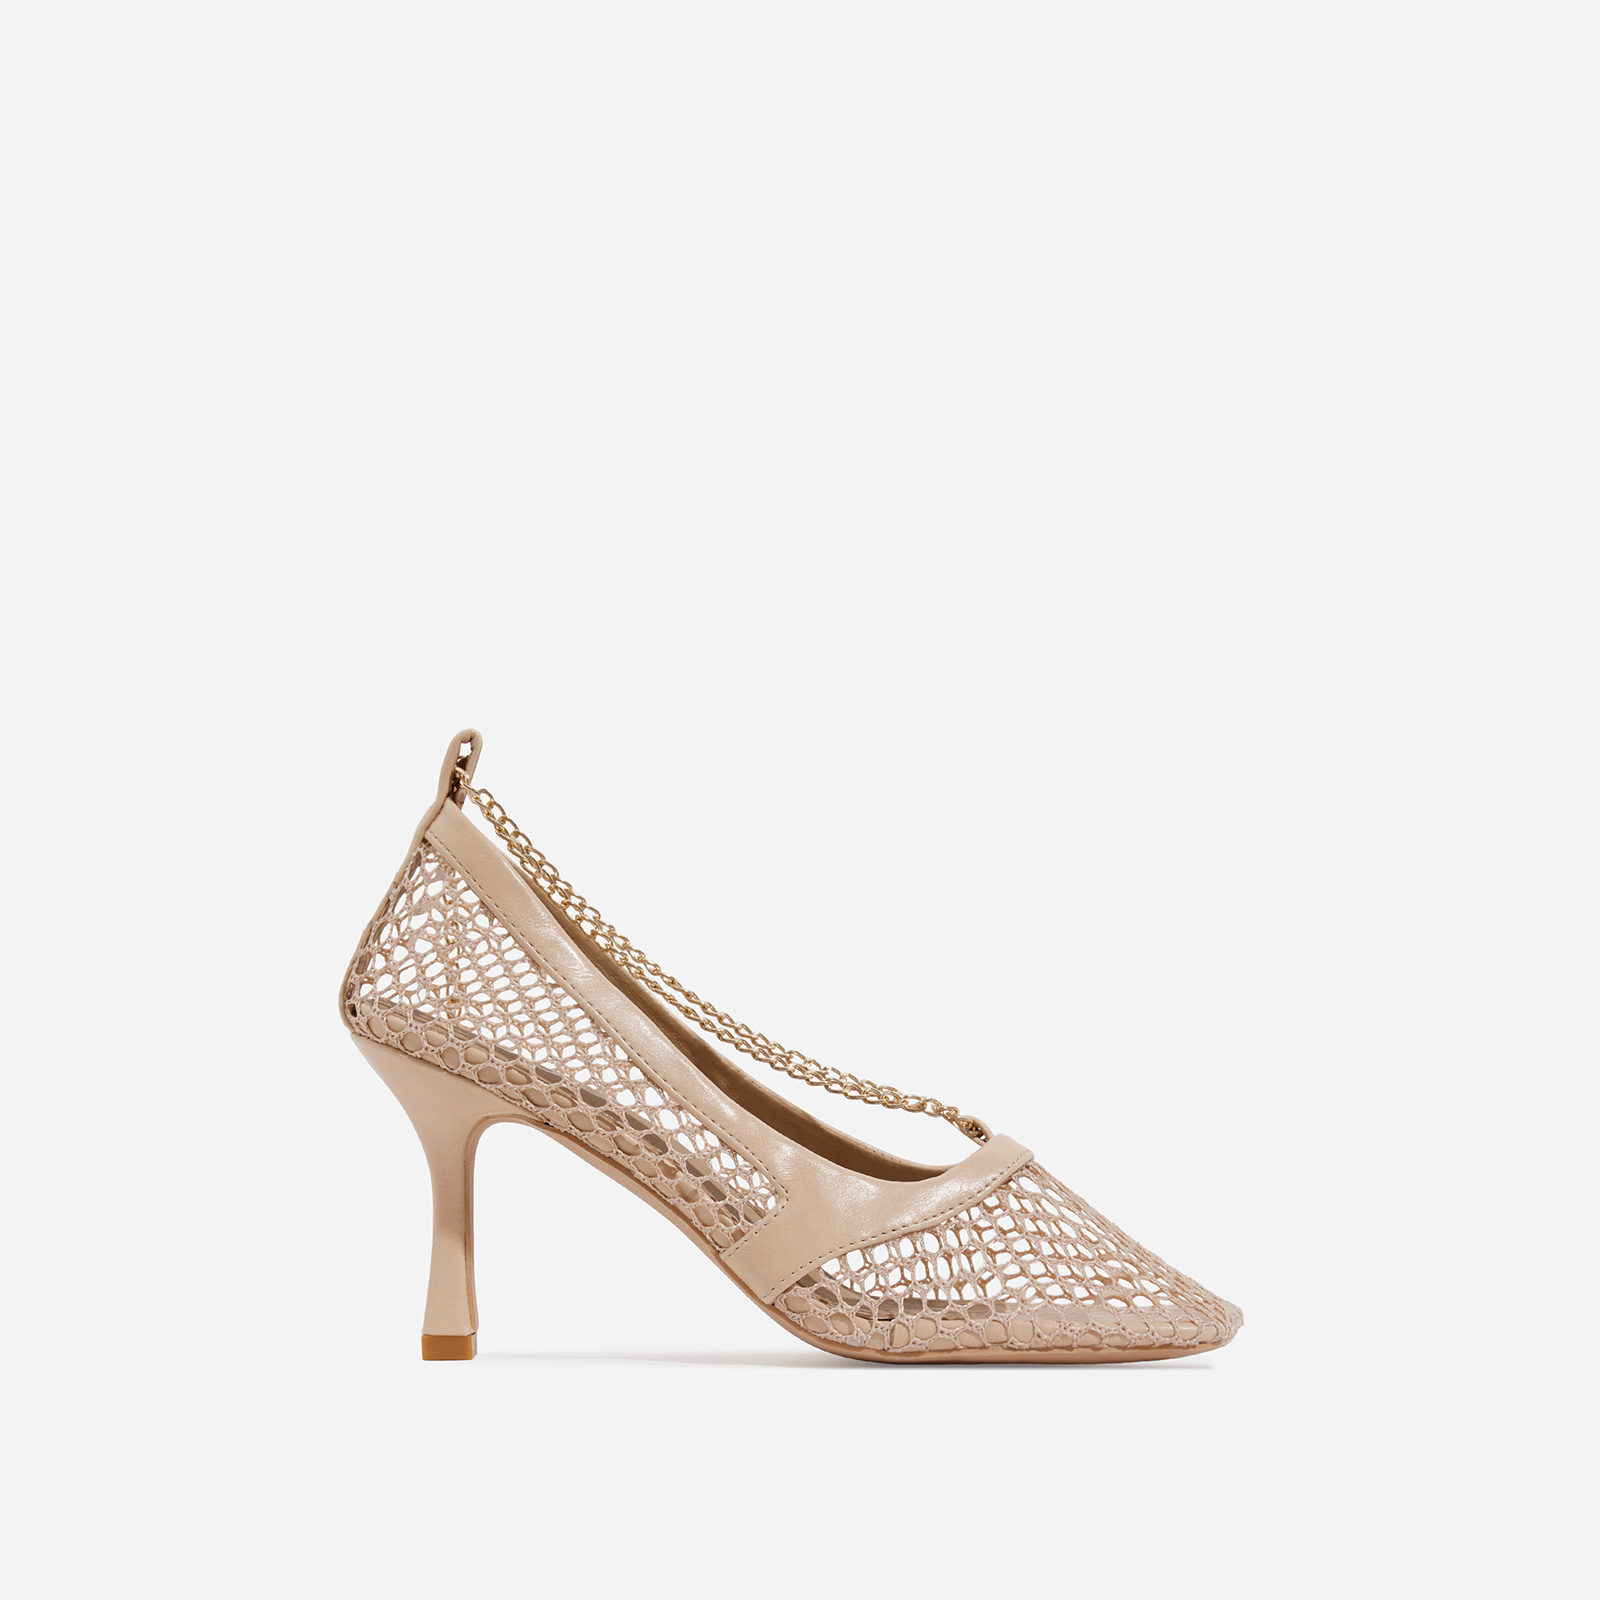 Montag Chain Detail Square Toe Fishnet Court Kitten Heel In Nude Faux Leather